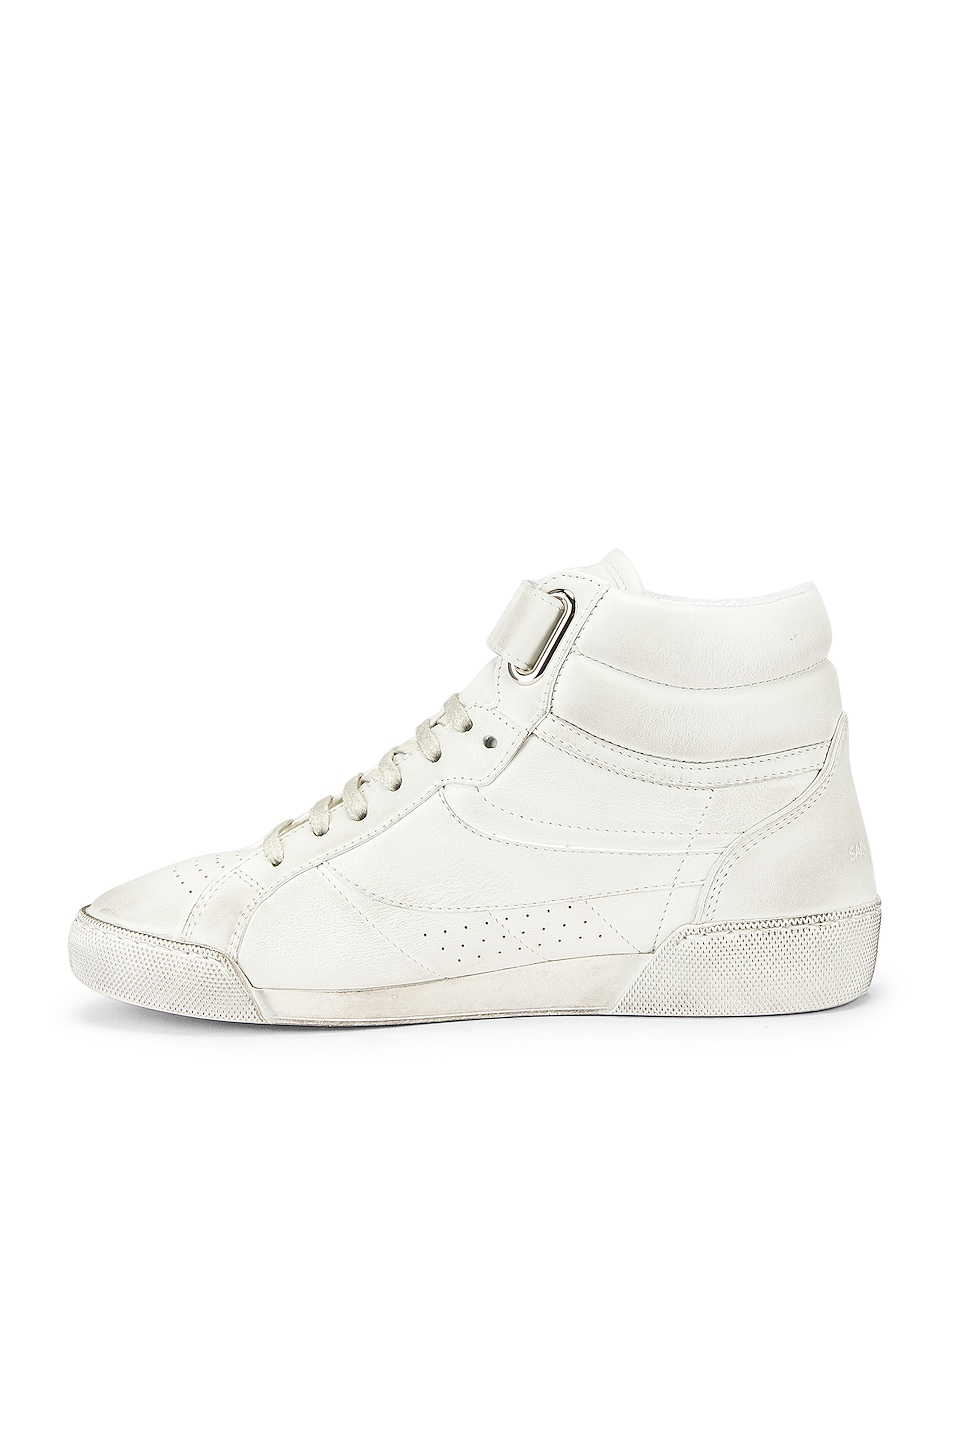 Image 5 of Saint Laurent High Top Sneaker in White